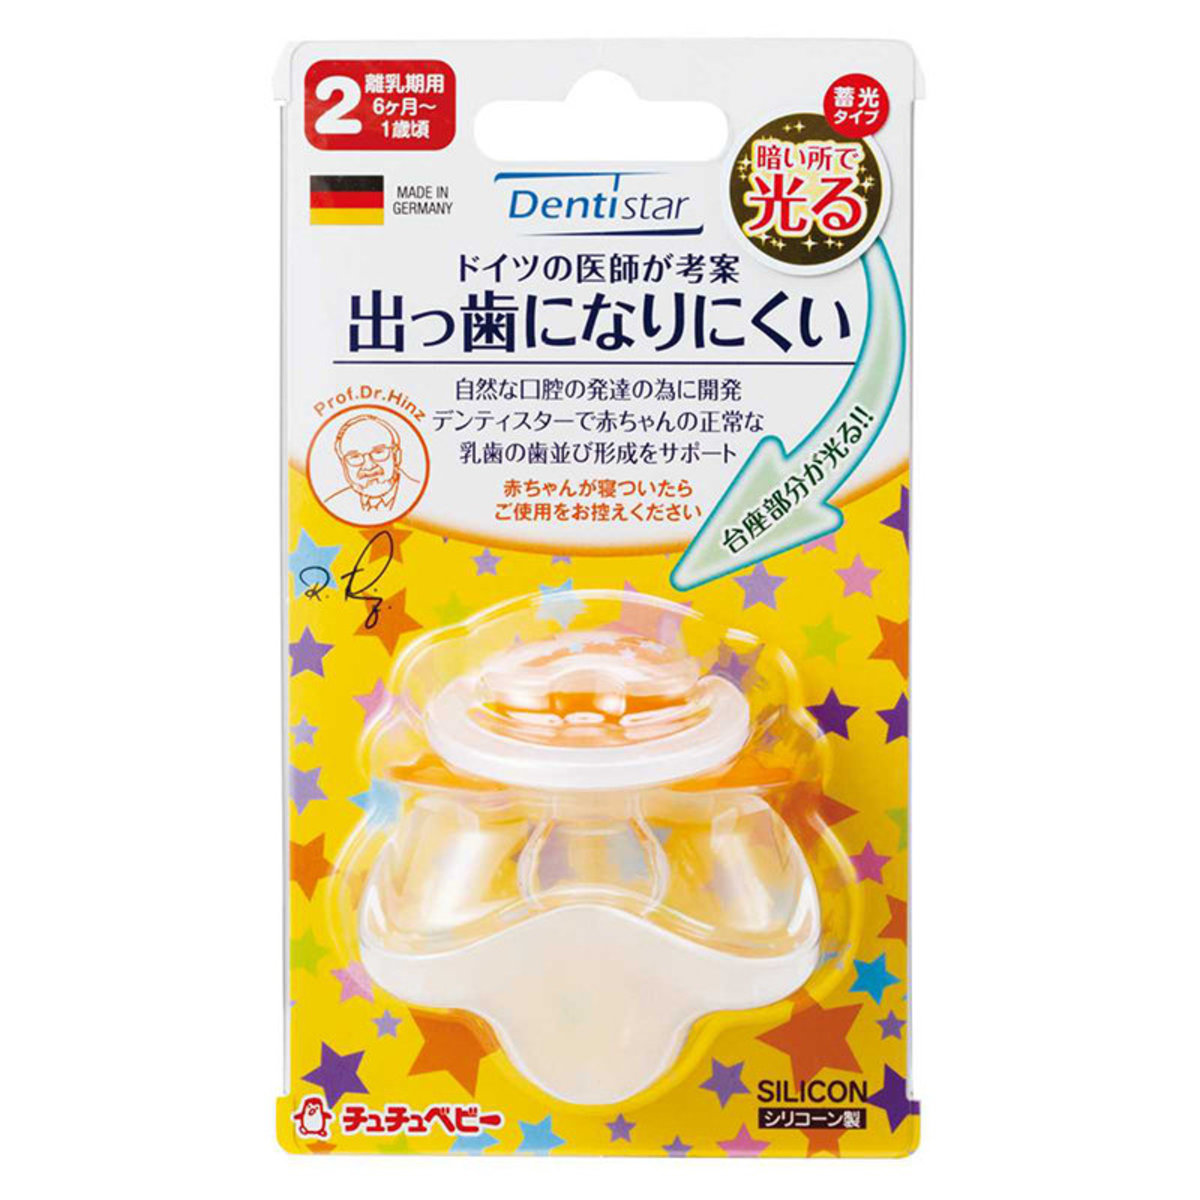 Dentistar Luminous Baby Pacifier (6-12 months) (Parallel Import)